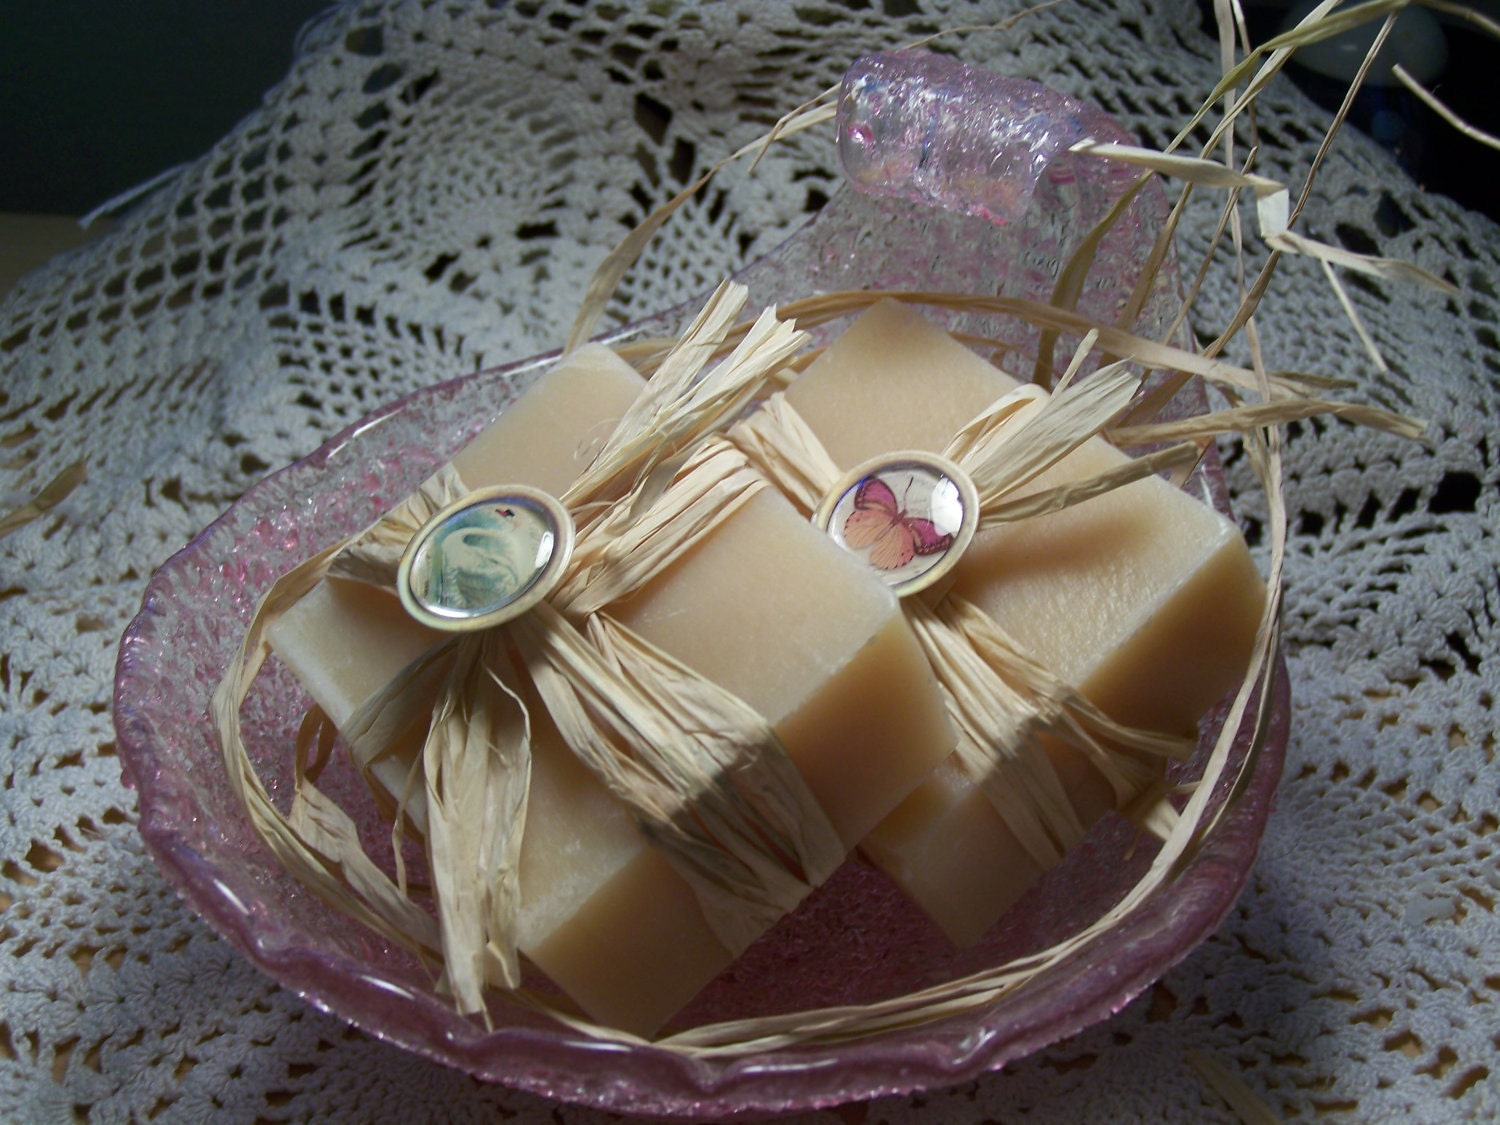 SALE - White tea bamboo soaps - gift set   Shea butter, organic,  handmade soap - reg price 18.00 - CountryChicSoaps